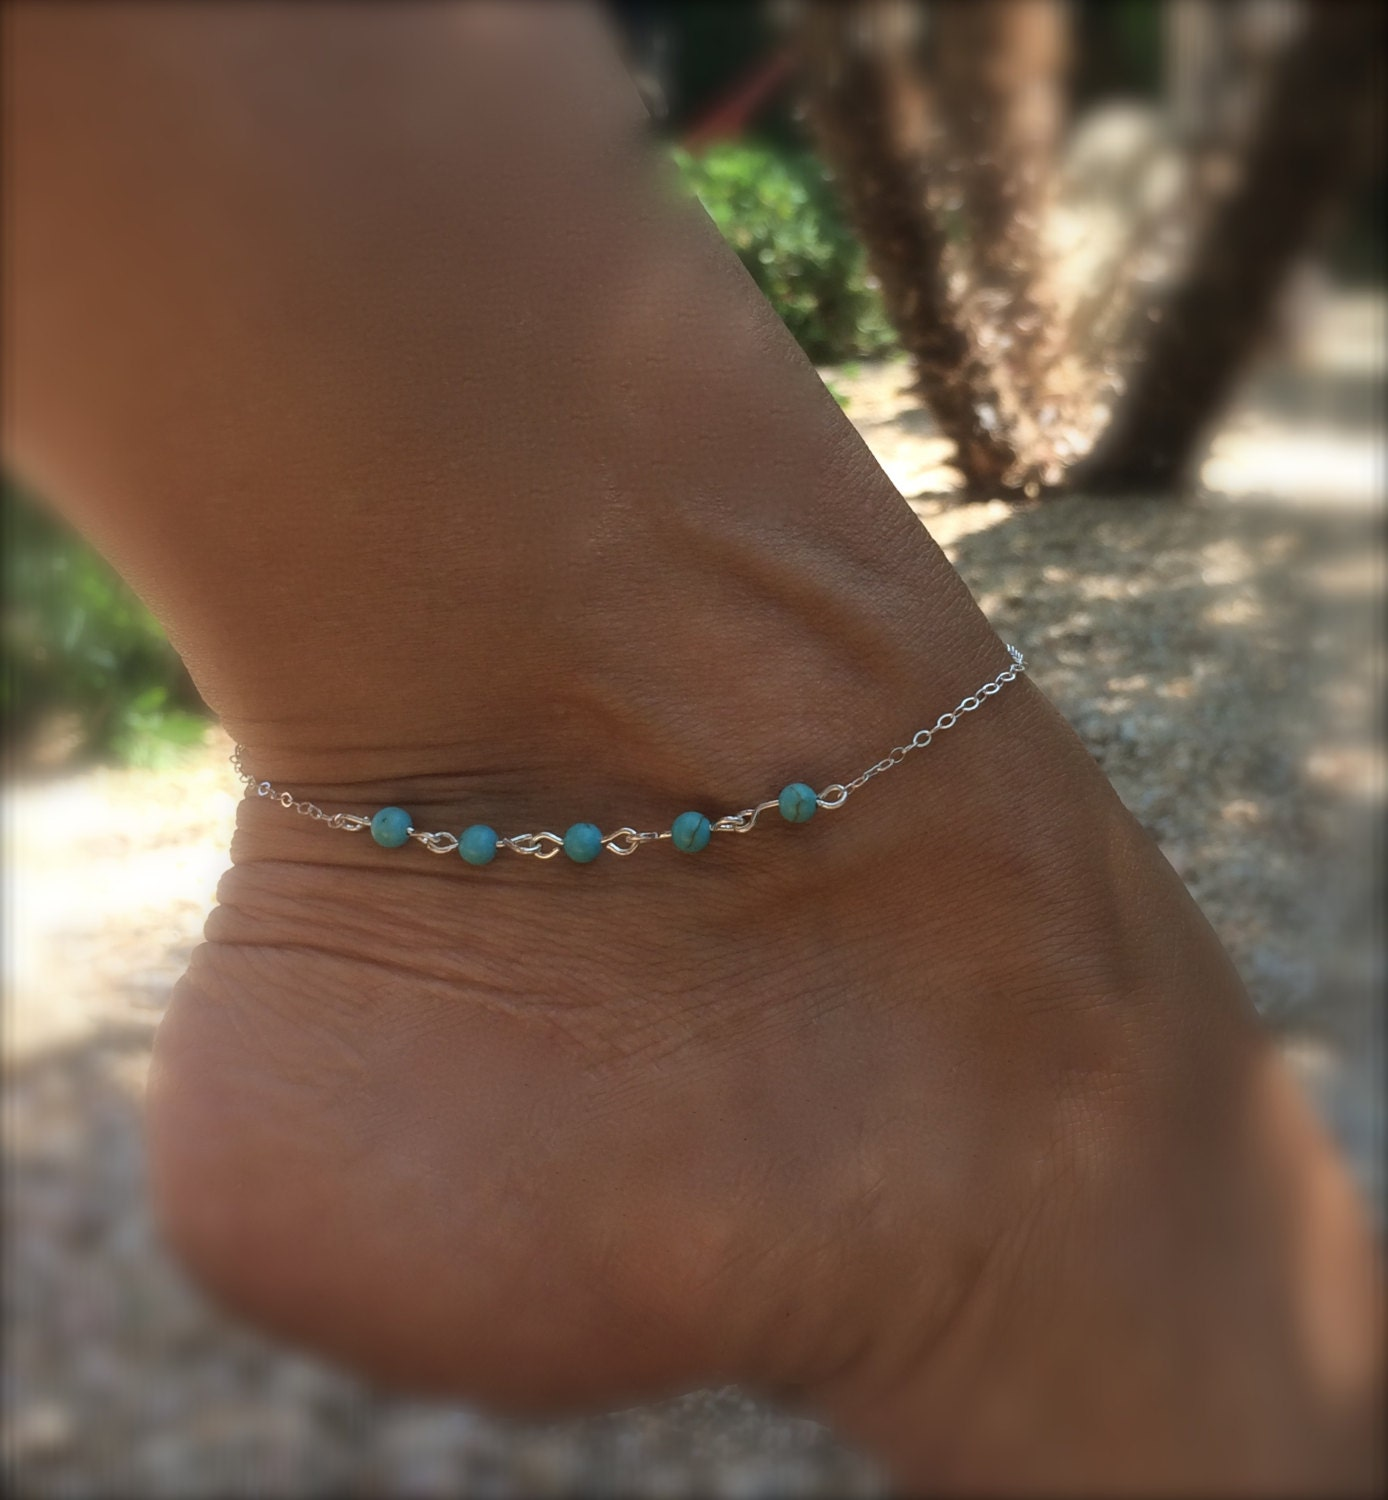 communication intuition bracelets blue expression turquoise filled products bracelet anklet gold release crystals ankle healing